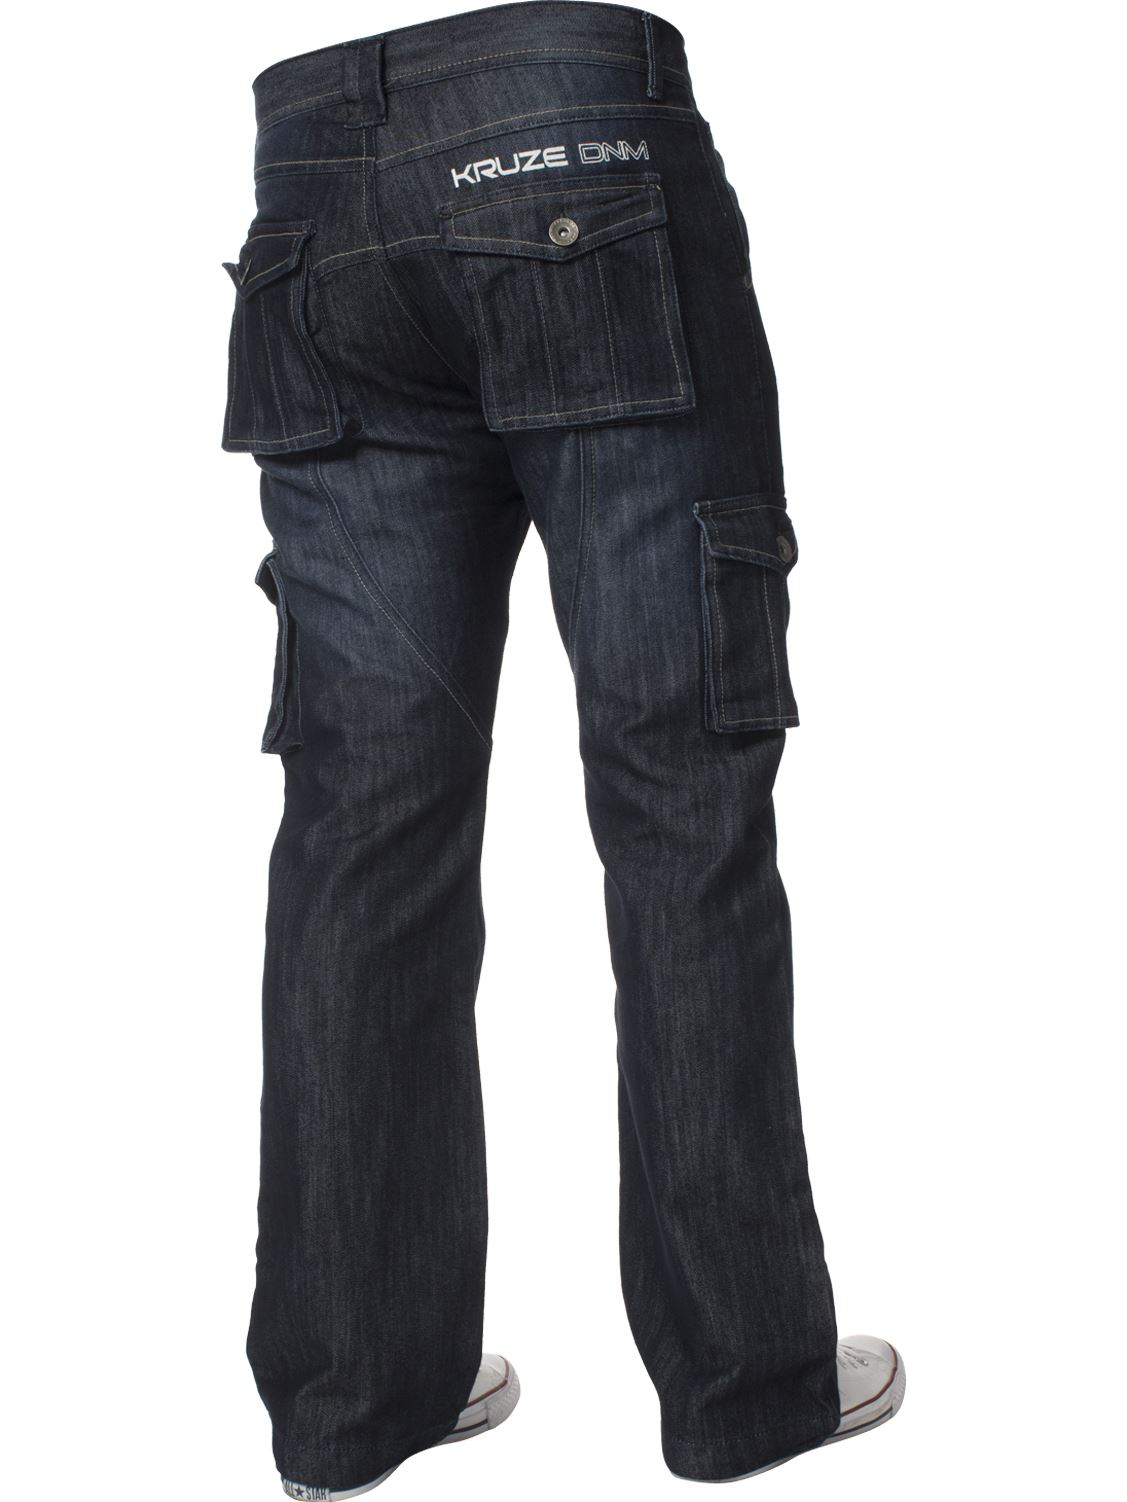 KRUZE-Mens-Combat-Jeans-Casual-Cargo-Work-Pants-Denim-Trousers-All-Waist-Sizes thumbnail 23